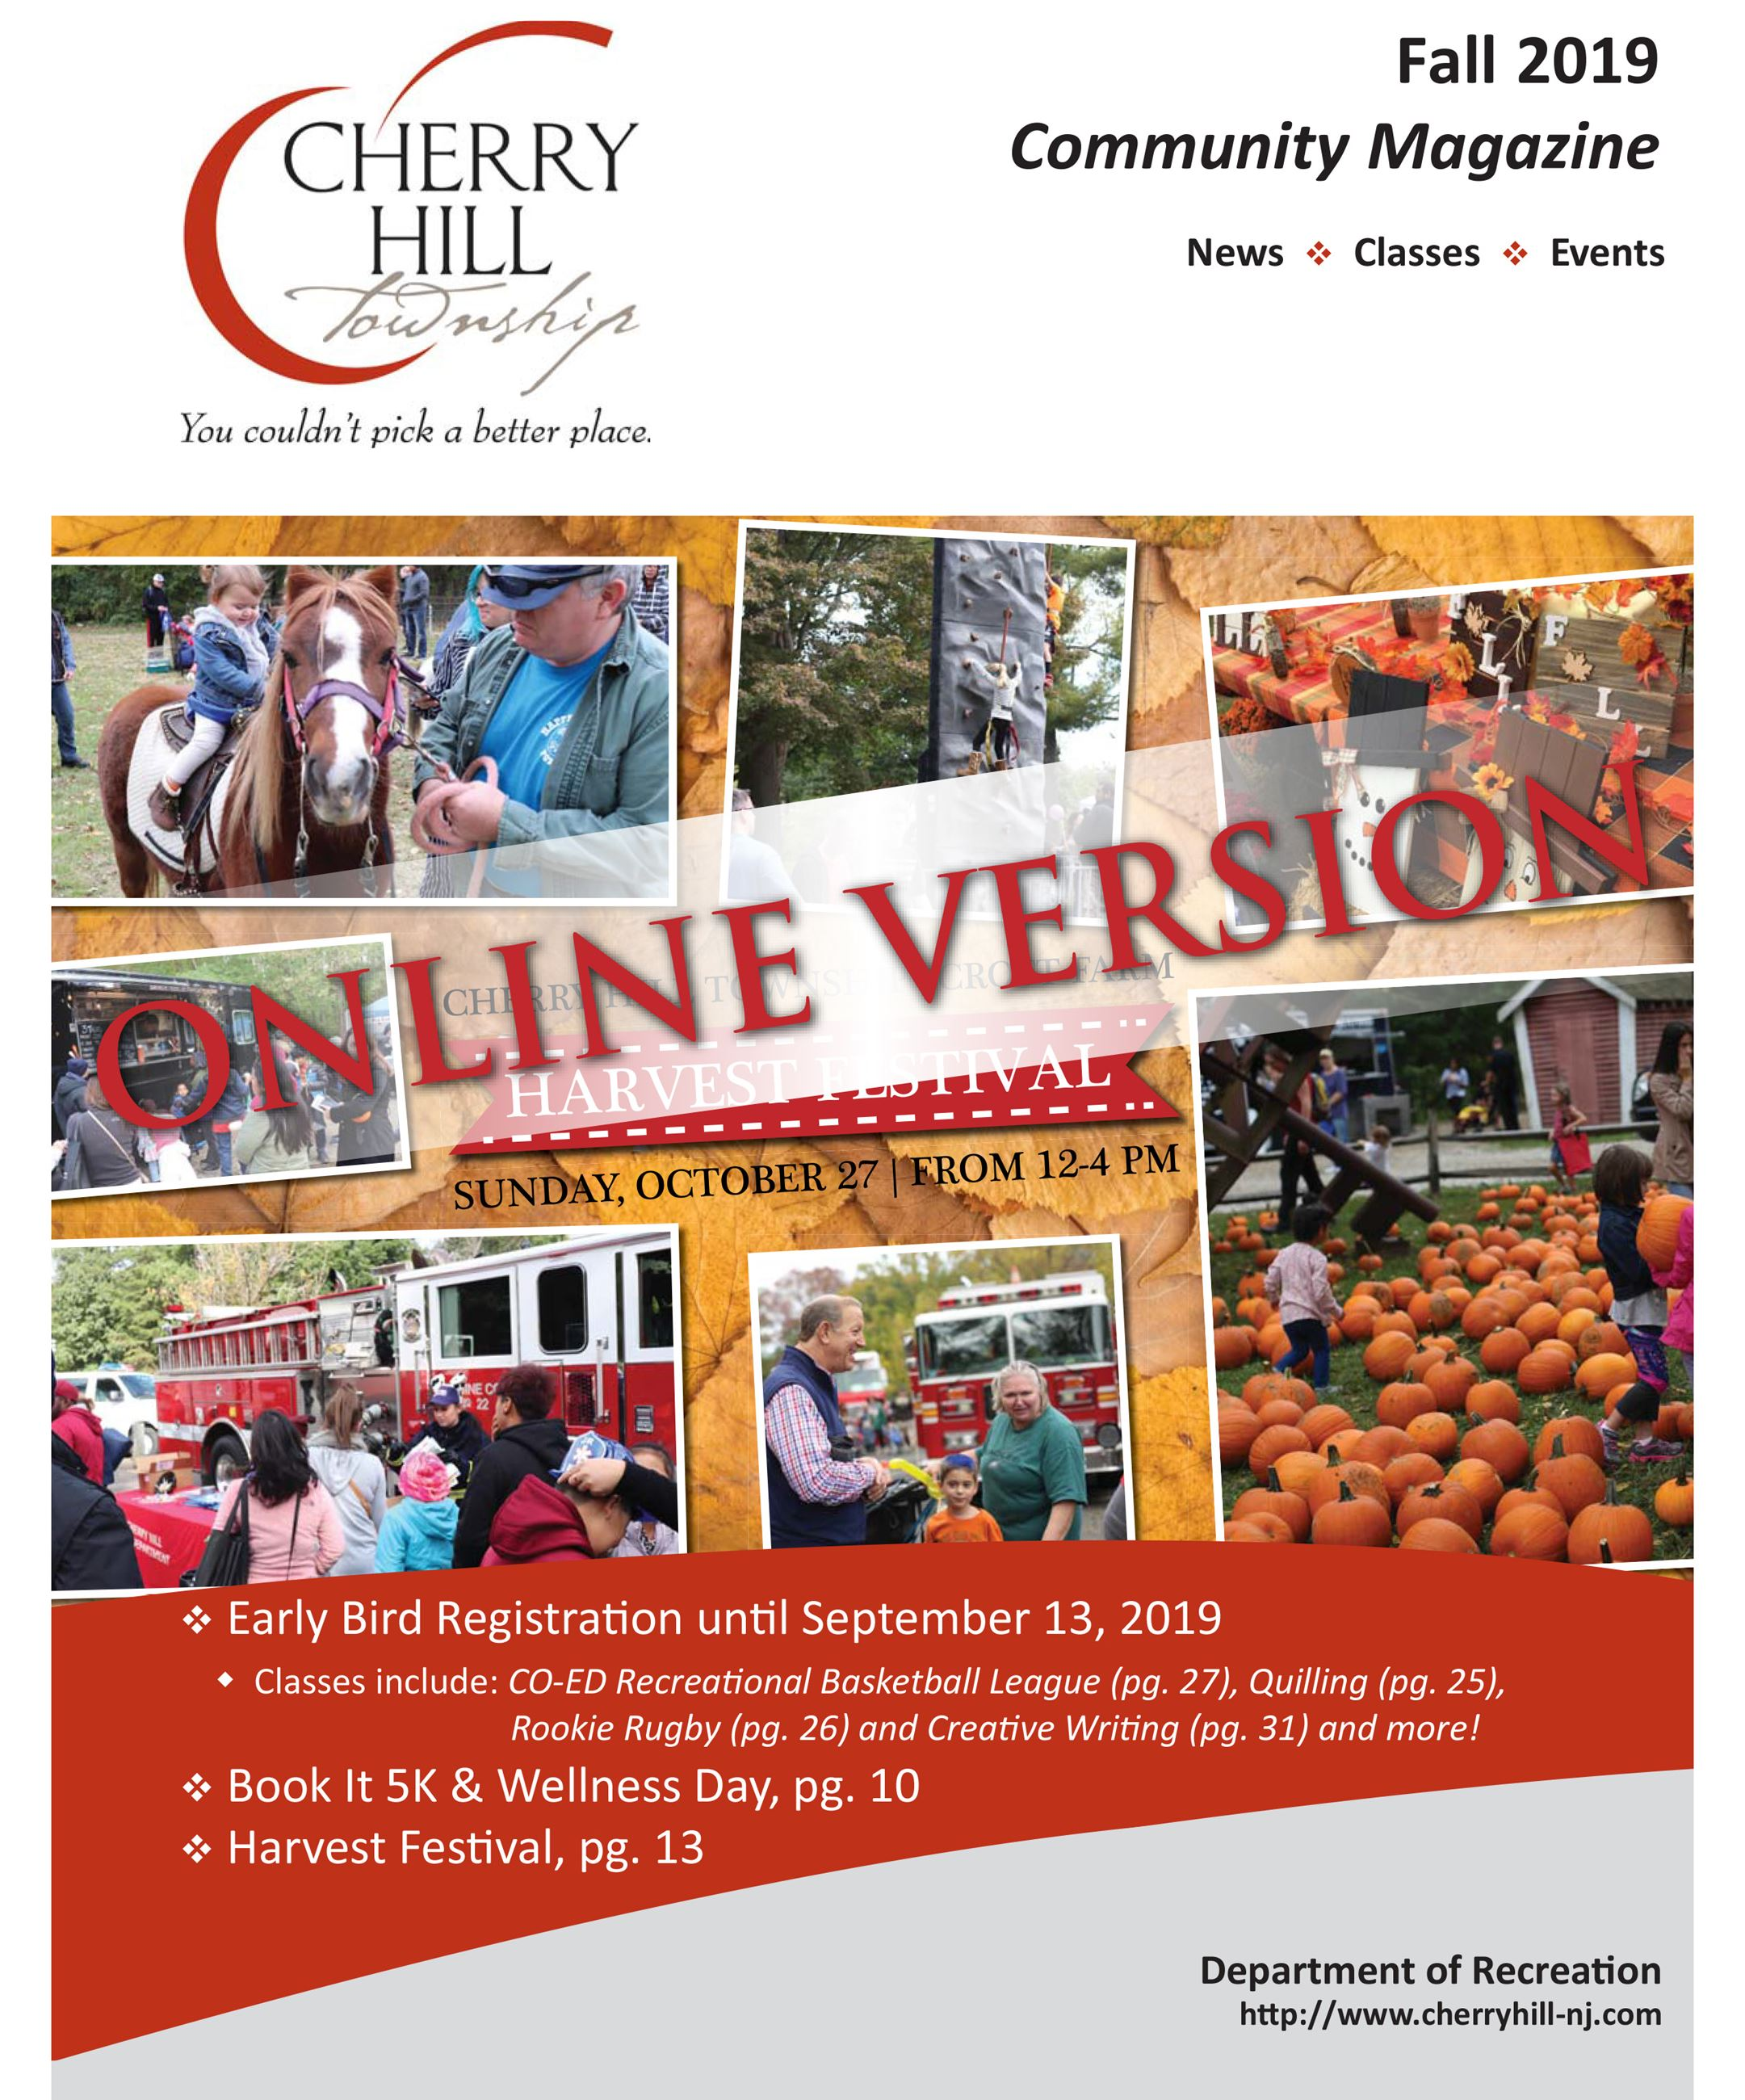 Fall 2019 Cherry Hill Community Magazine - Cover